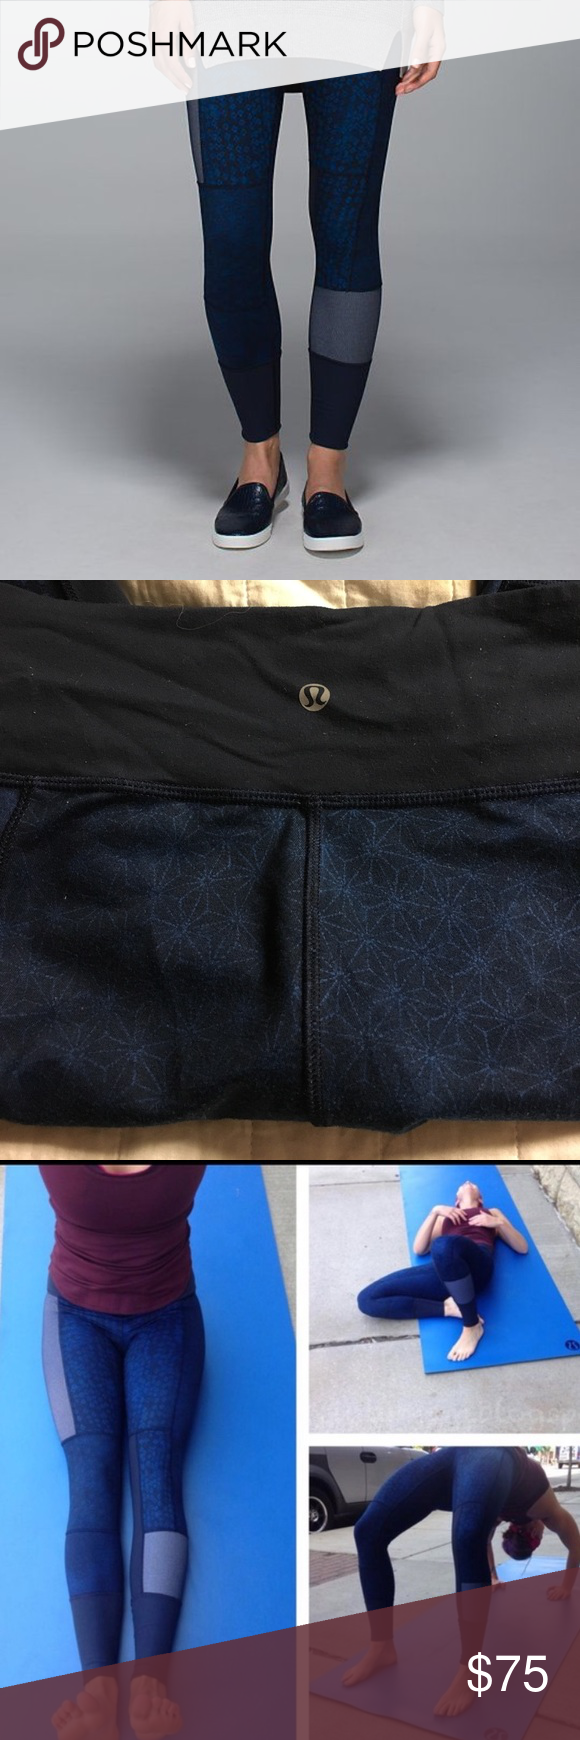 Wunder Under Blue Patchwork Sashiko Leggings Blue wunder under comfy leggings. I love them because I wear them to the gym or like jeans with a cute top. Full length. Regular thickness of wunder under legging. lululemon athletica Pants Leggings